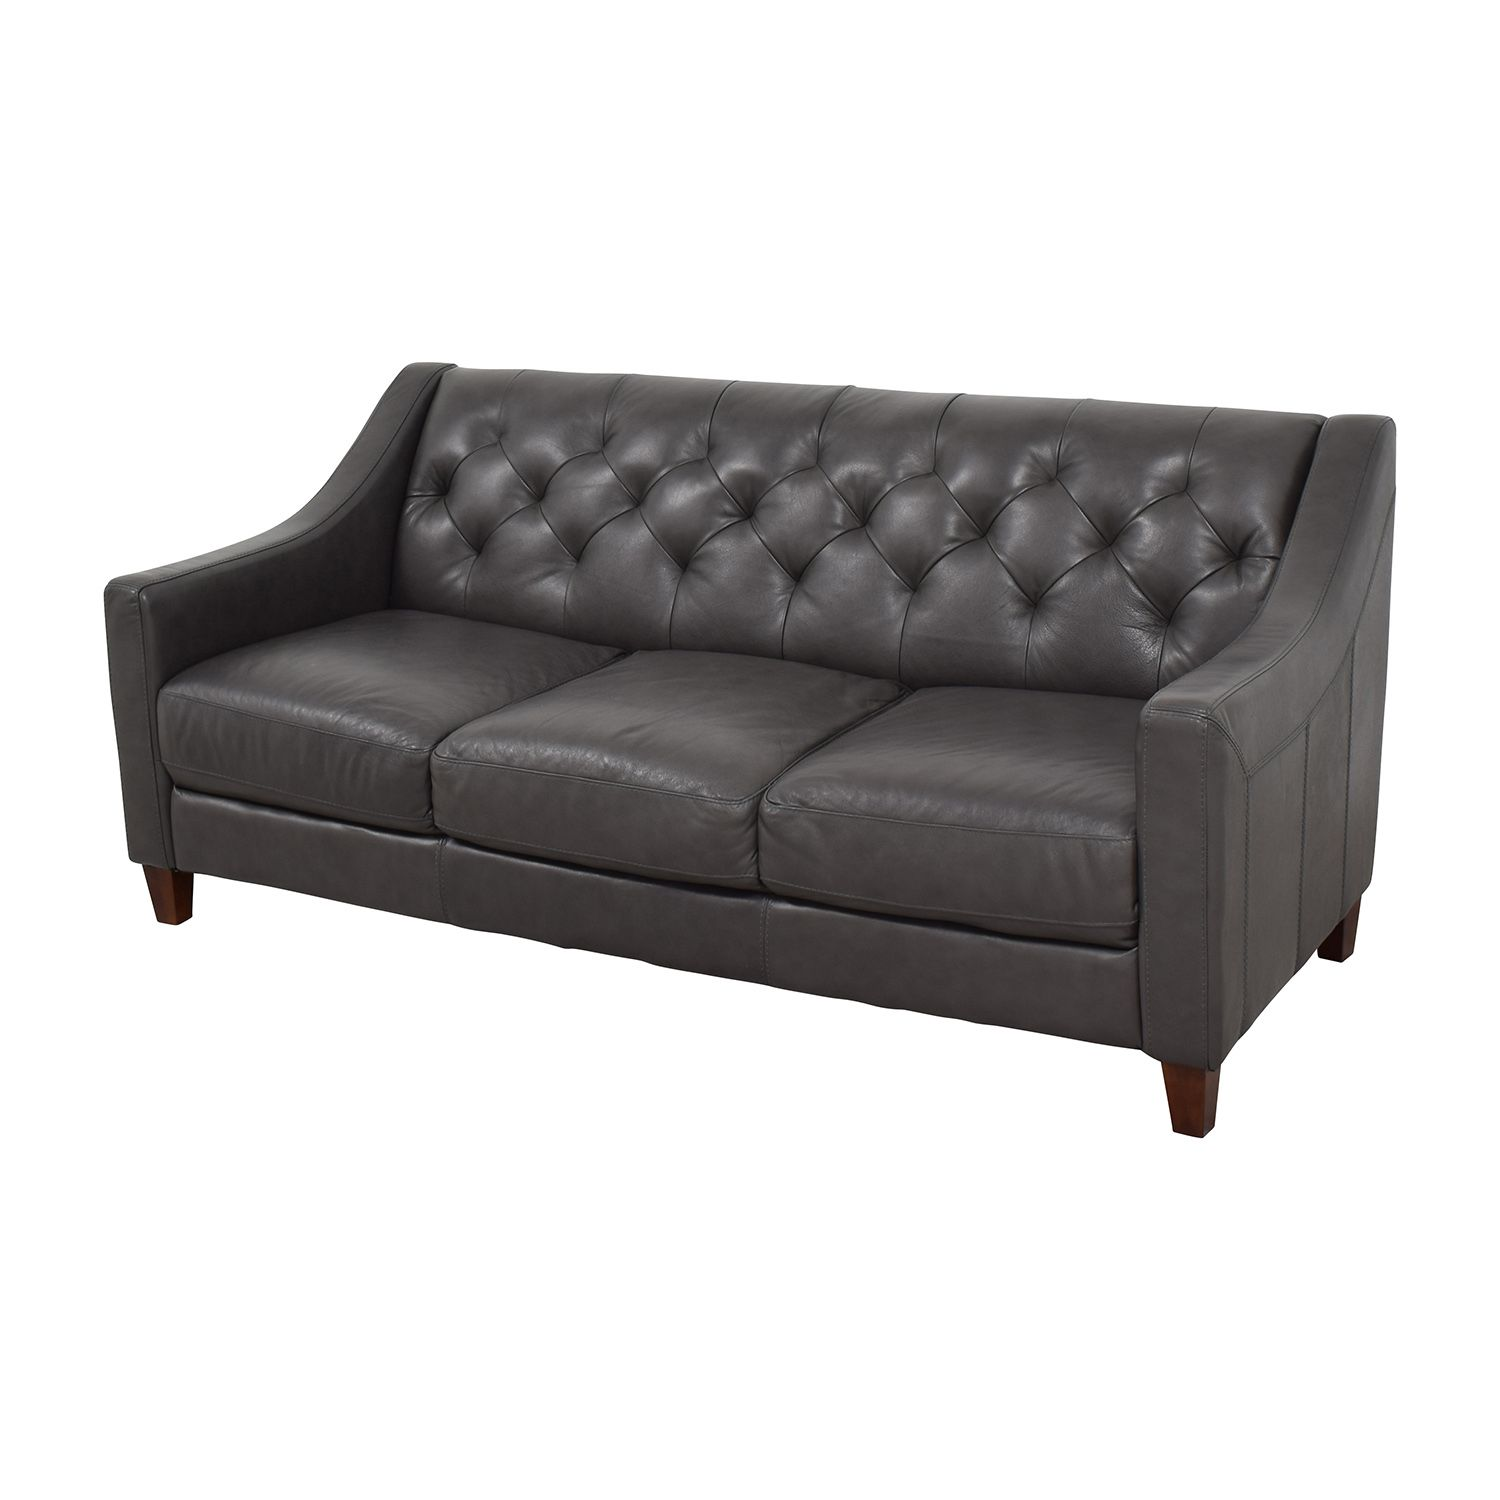 Sleeper Schnitt Queen Schlafsofa Mit Chaiselongue Chaiselongue